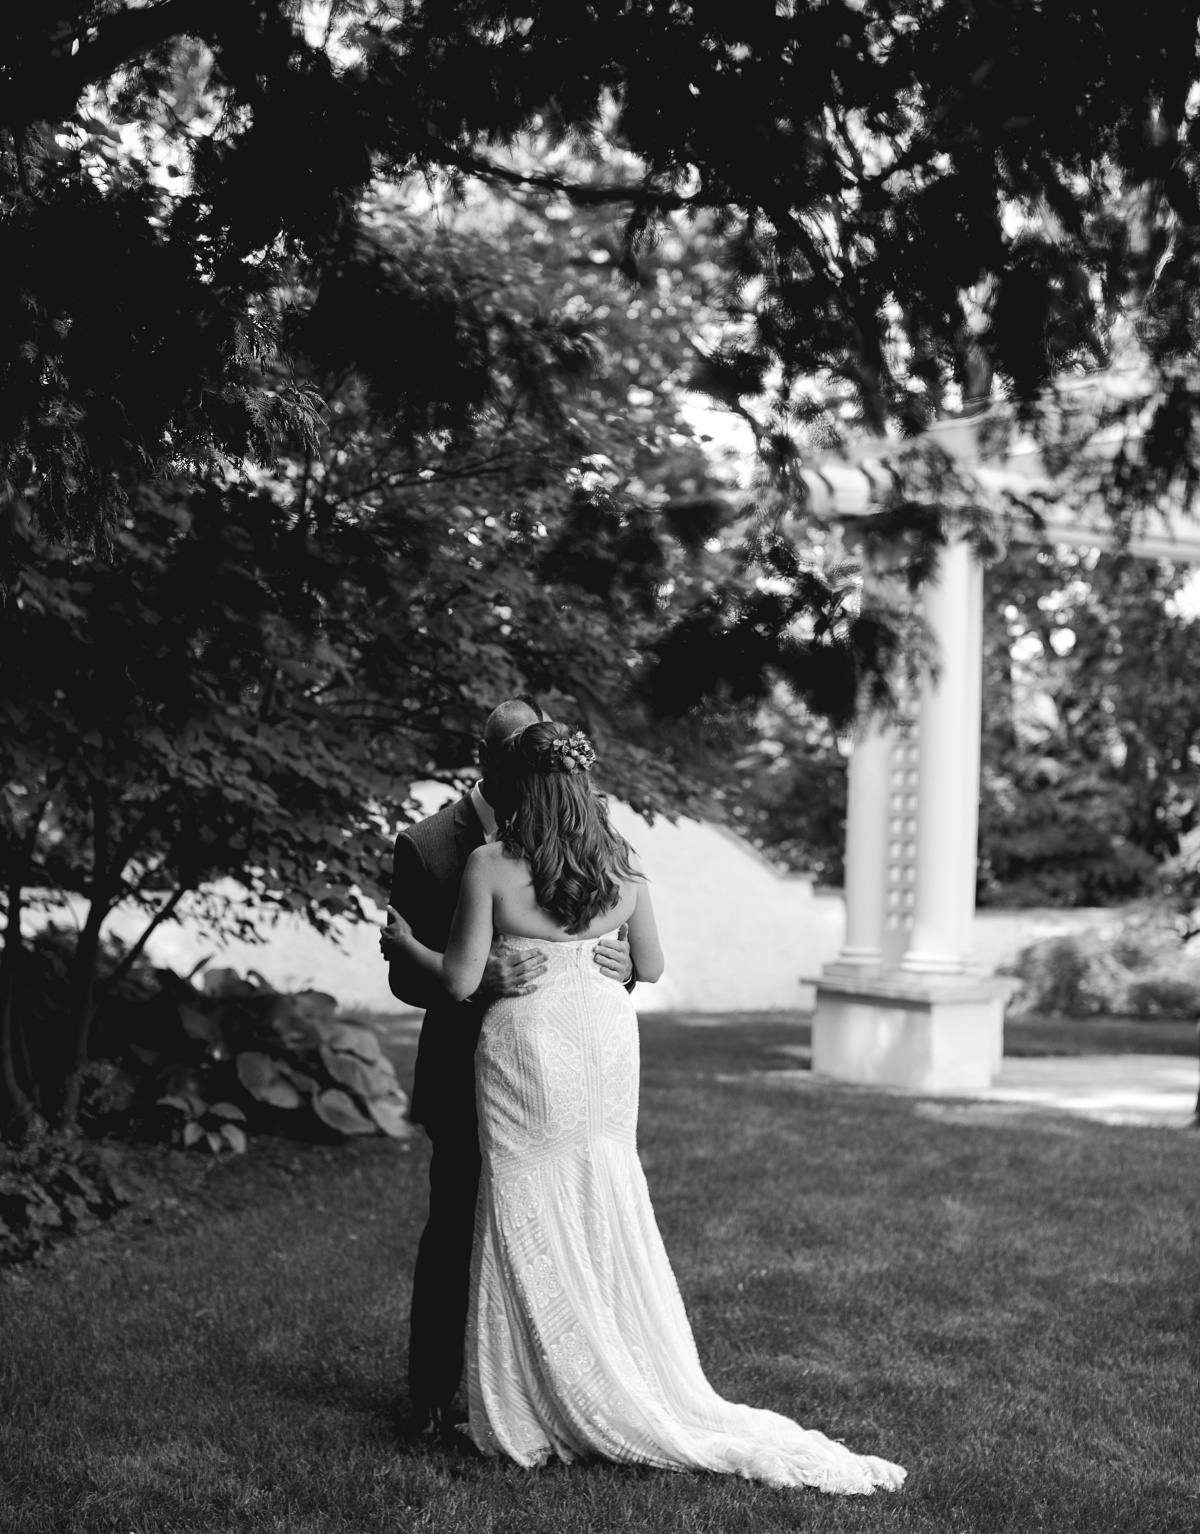 bride and groom embrace in a garden before the wedding ceremony